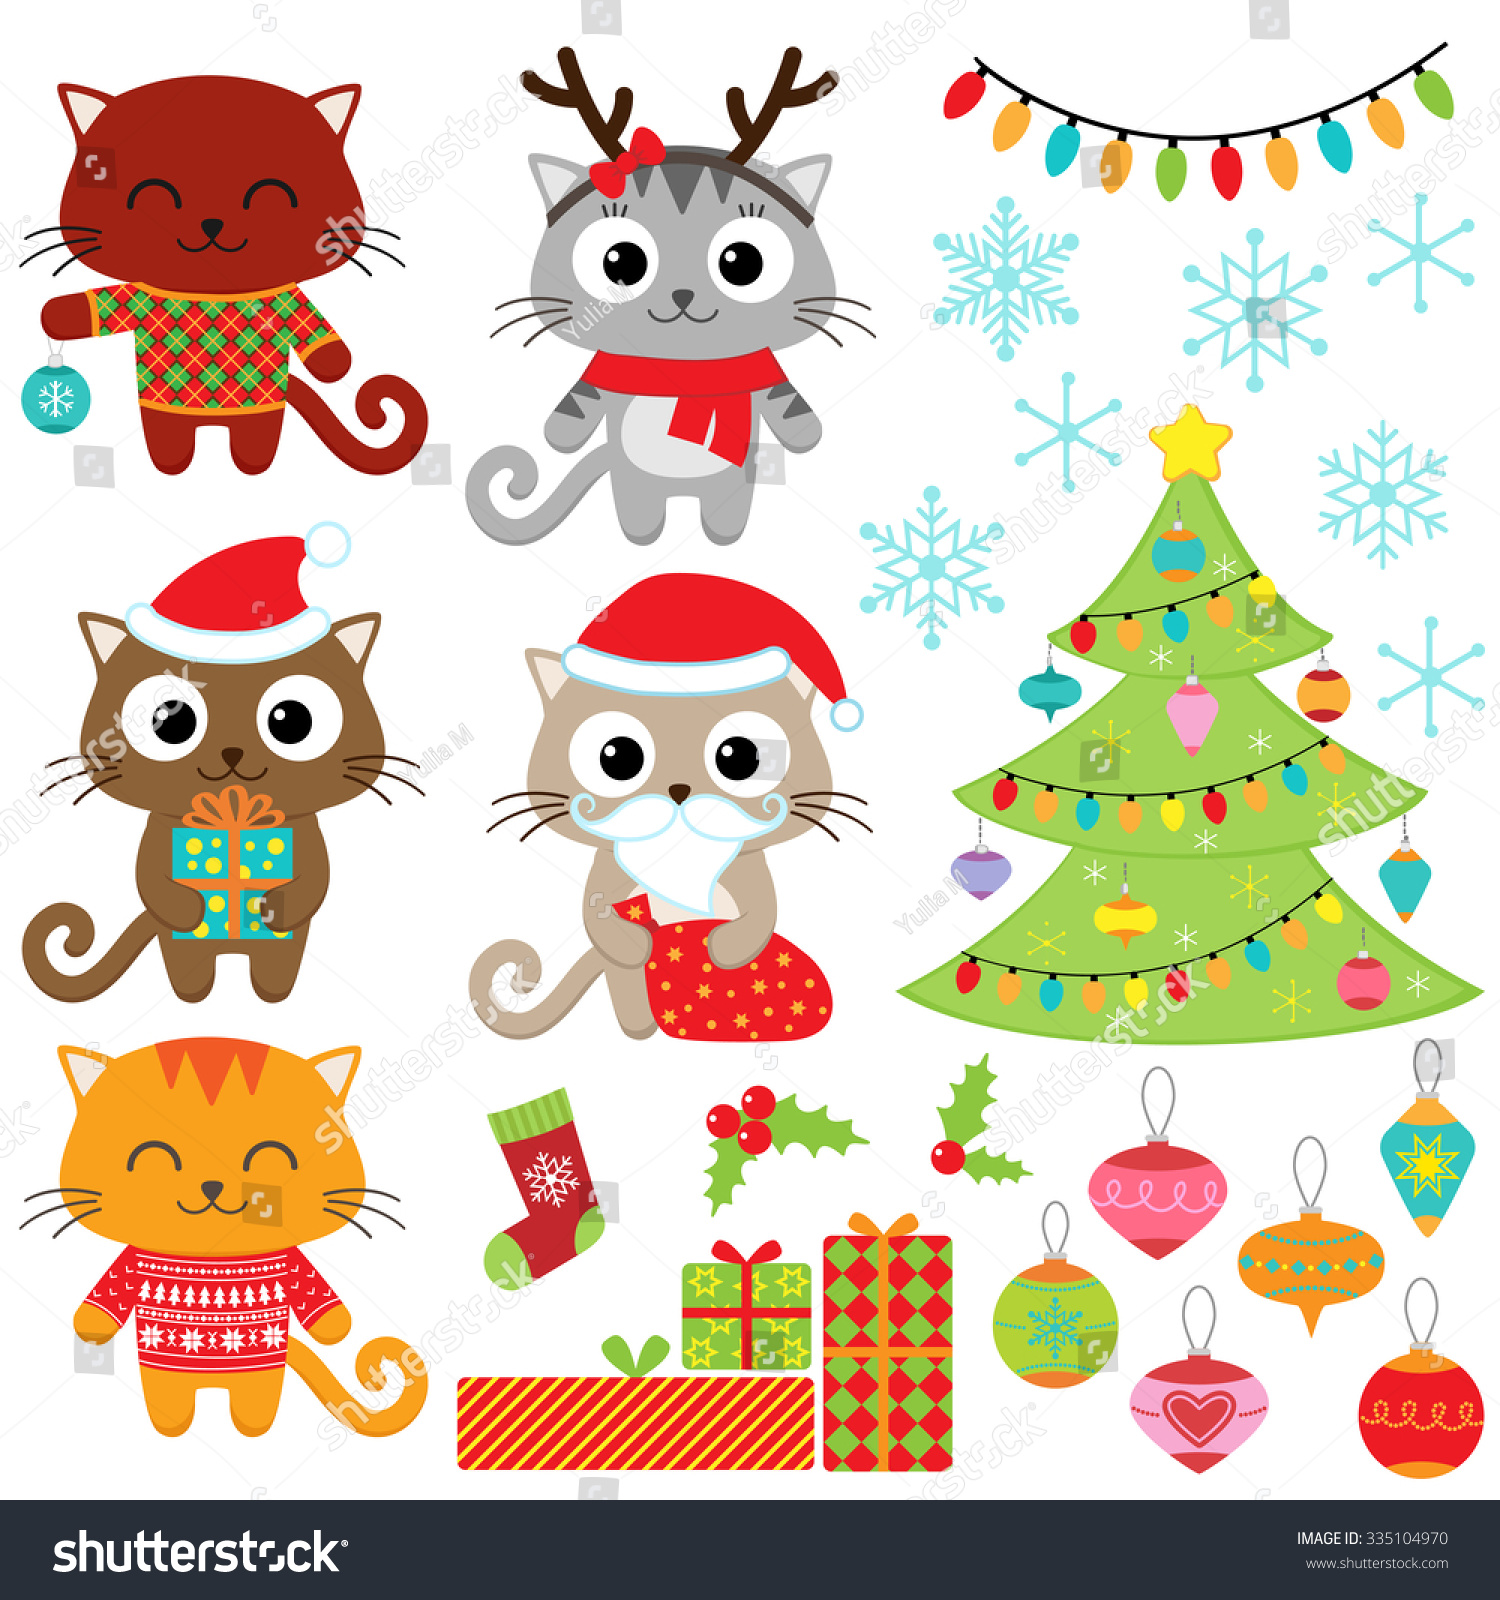 Christmas Vector Set Of Cats In Costumes Gifts Tree Ornaments And Snowflakes